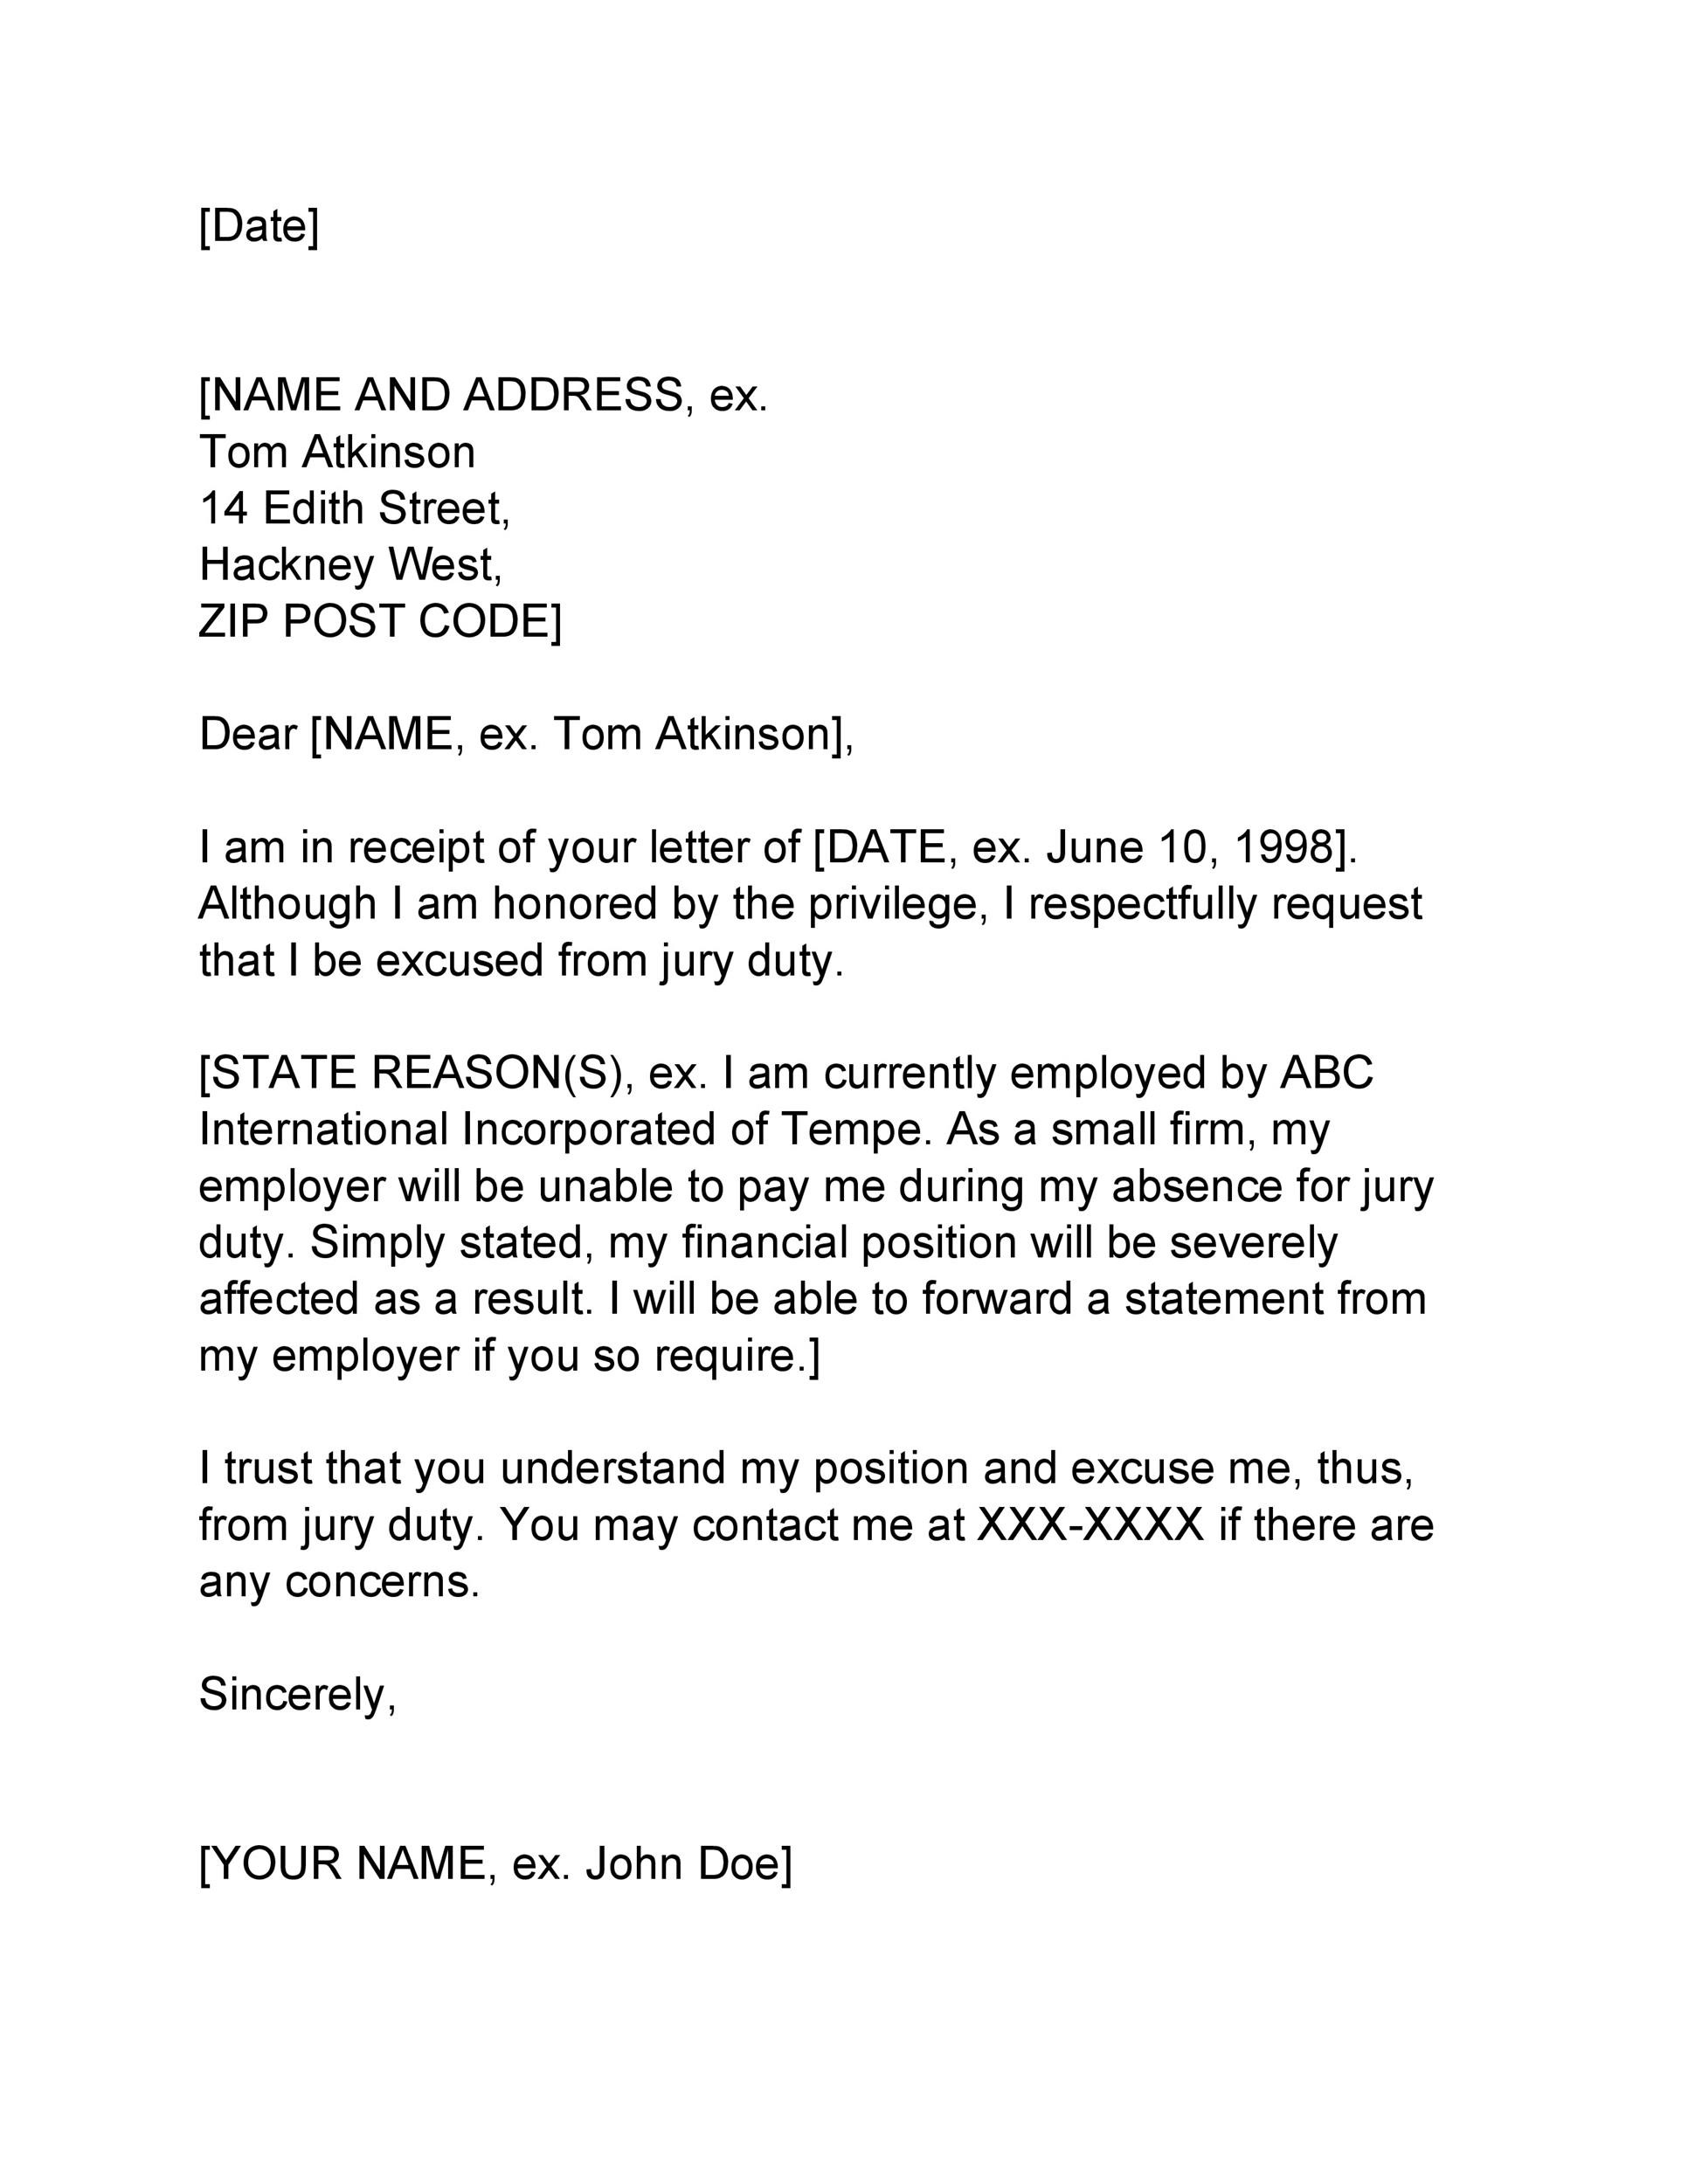 Free jury duty excuse letter template 17